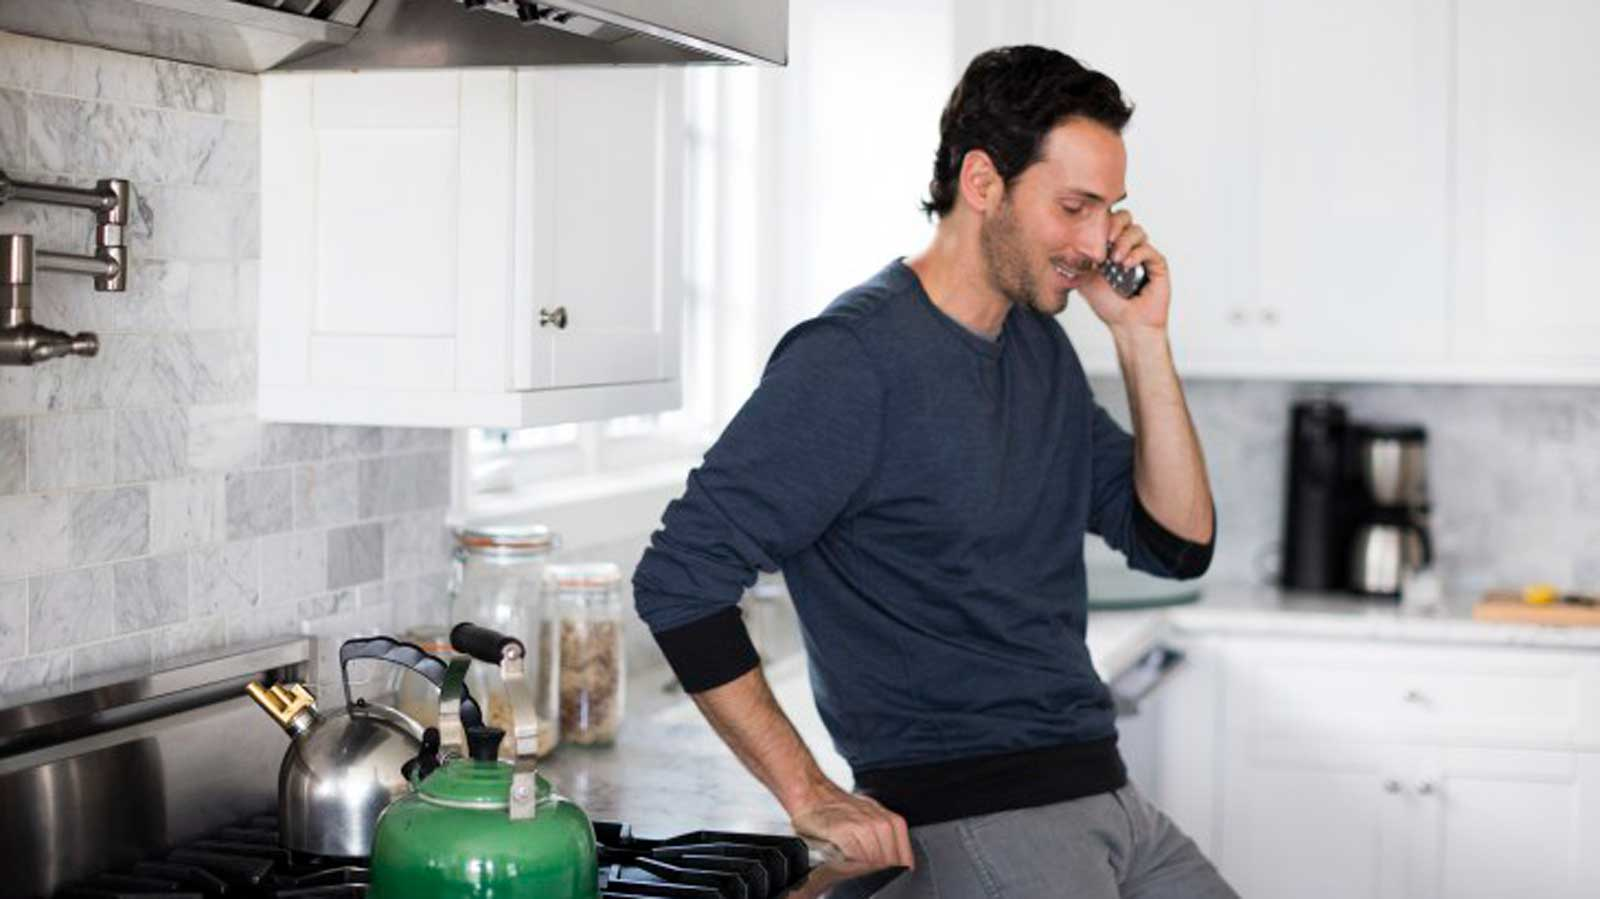 Man on phone in kitchen